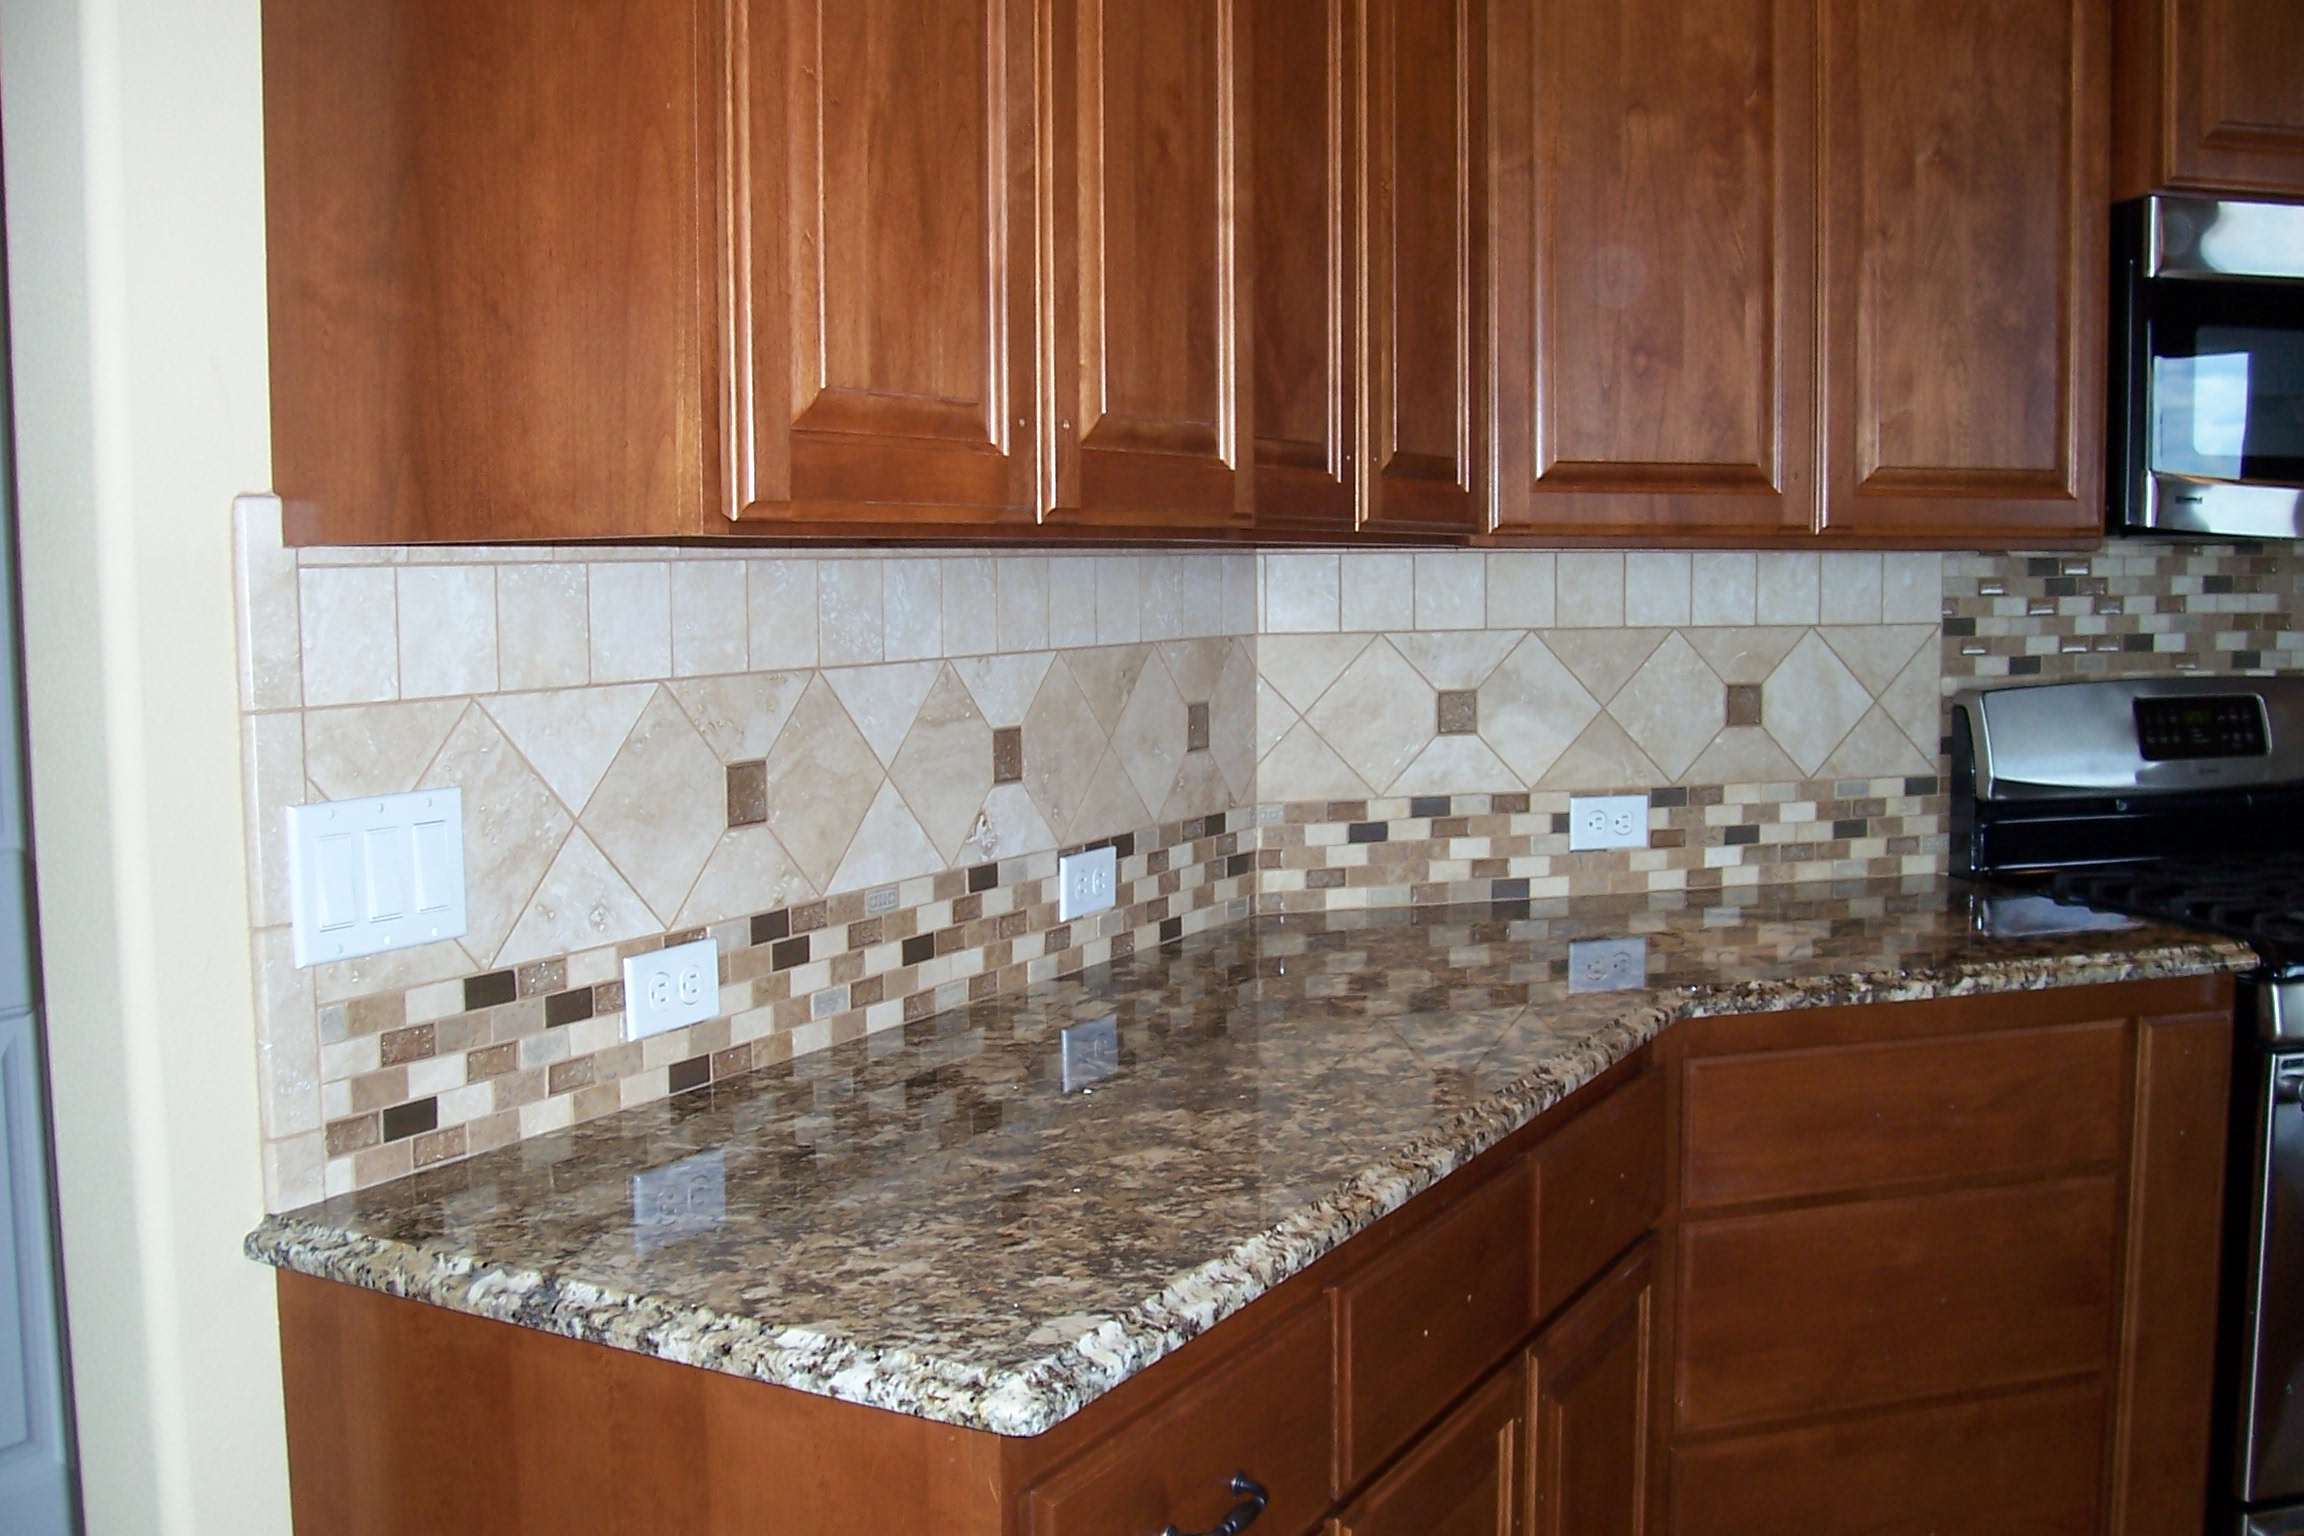 301 moved permanently - Backsplash ideas for kitchen ...